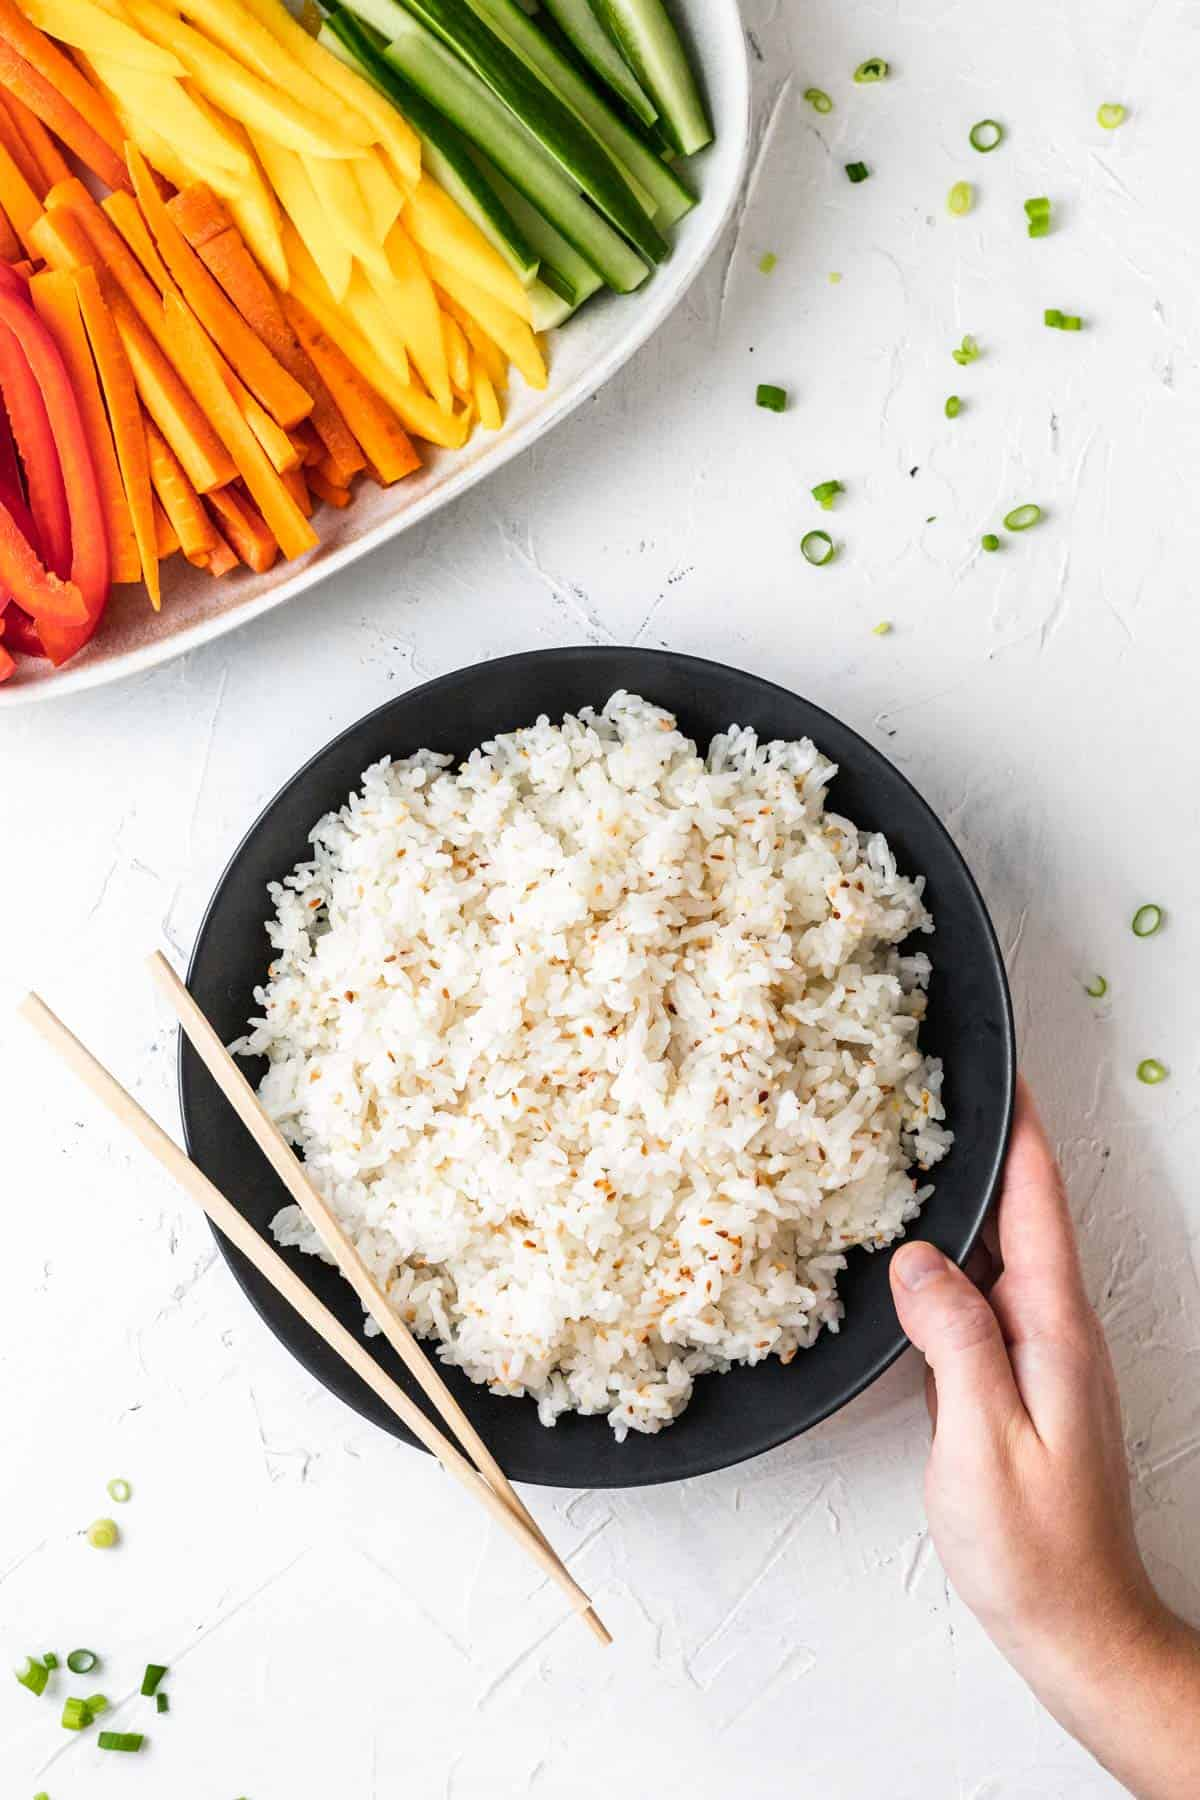 A hand placing a black bowl filled with sushi rice on a white table next to a plate of sliced vegetables.